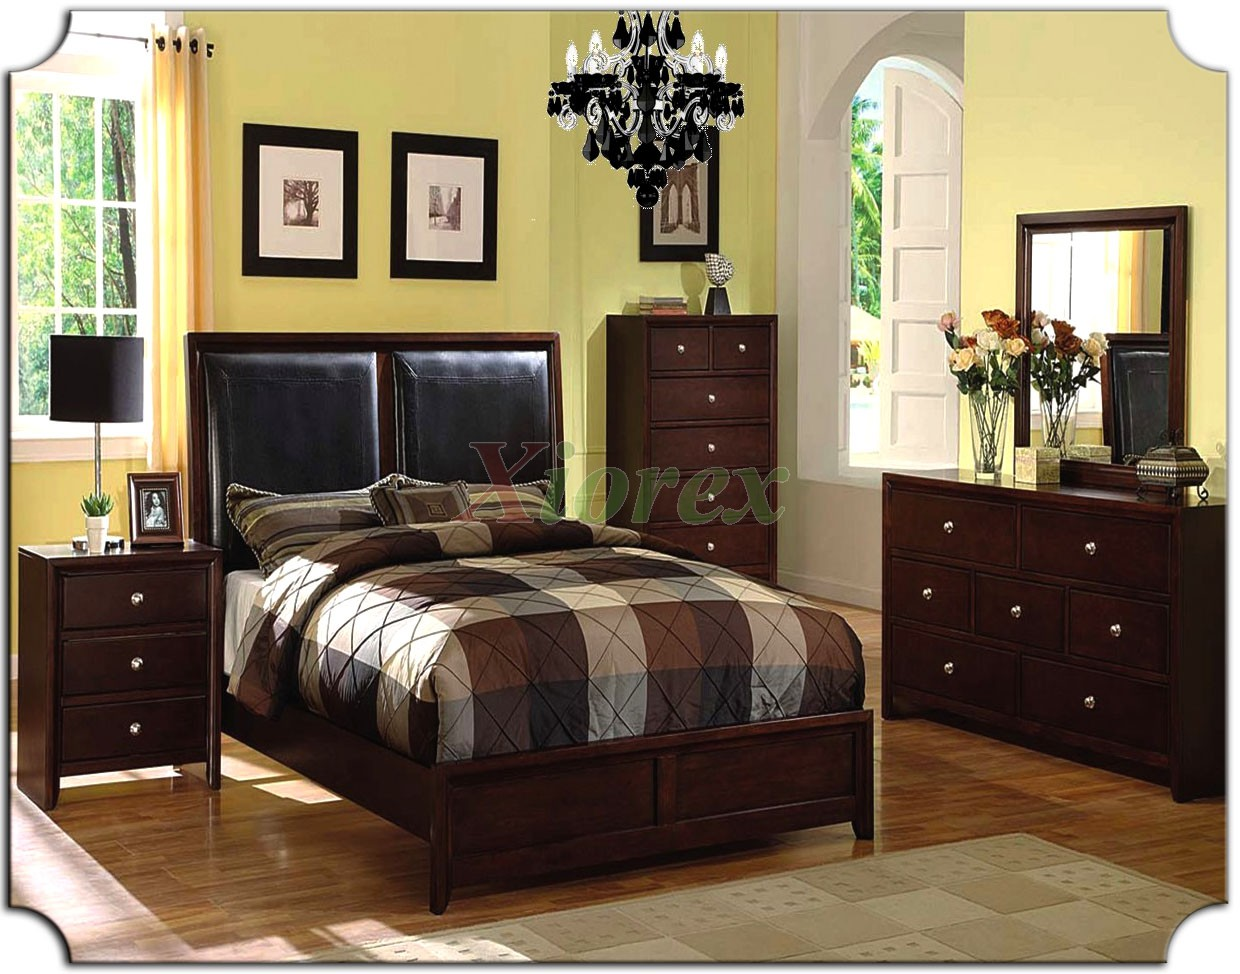 Exceptional Bedroom Furniture Set With Leather Panel Headboard Beds 161 | Xiorex